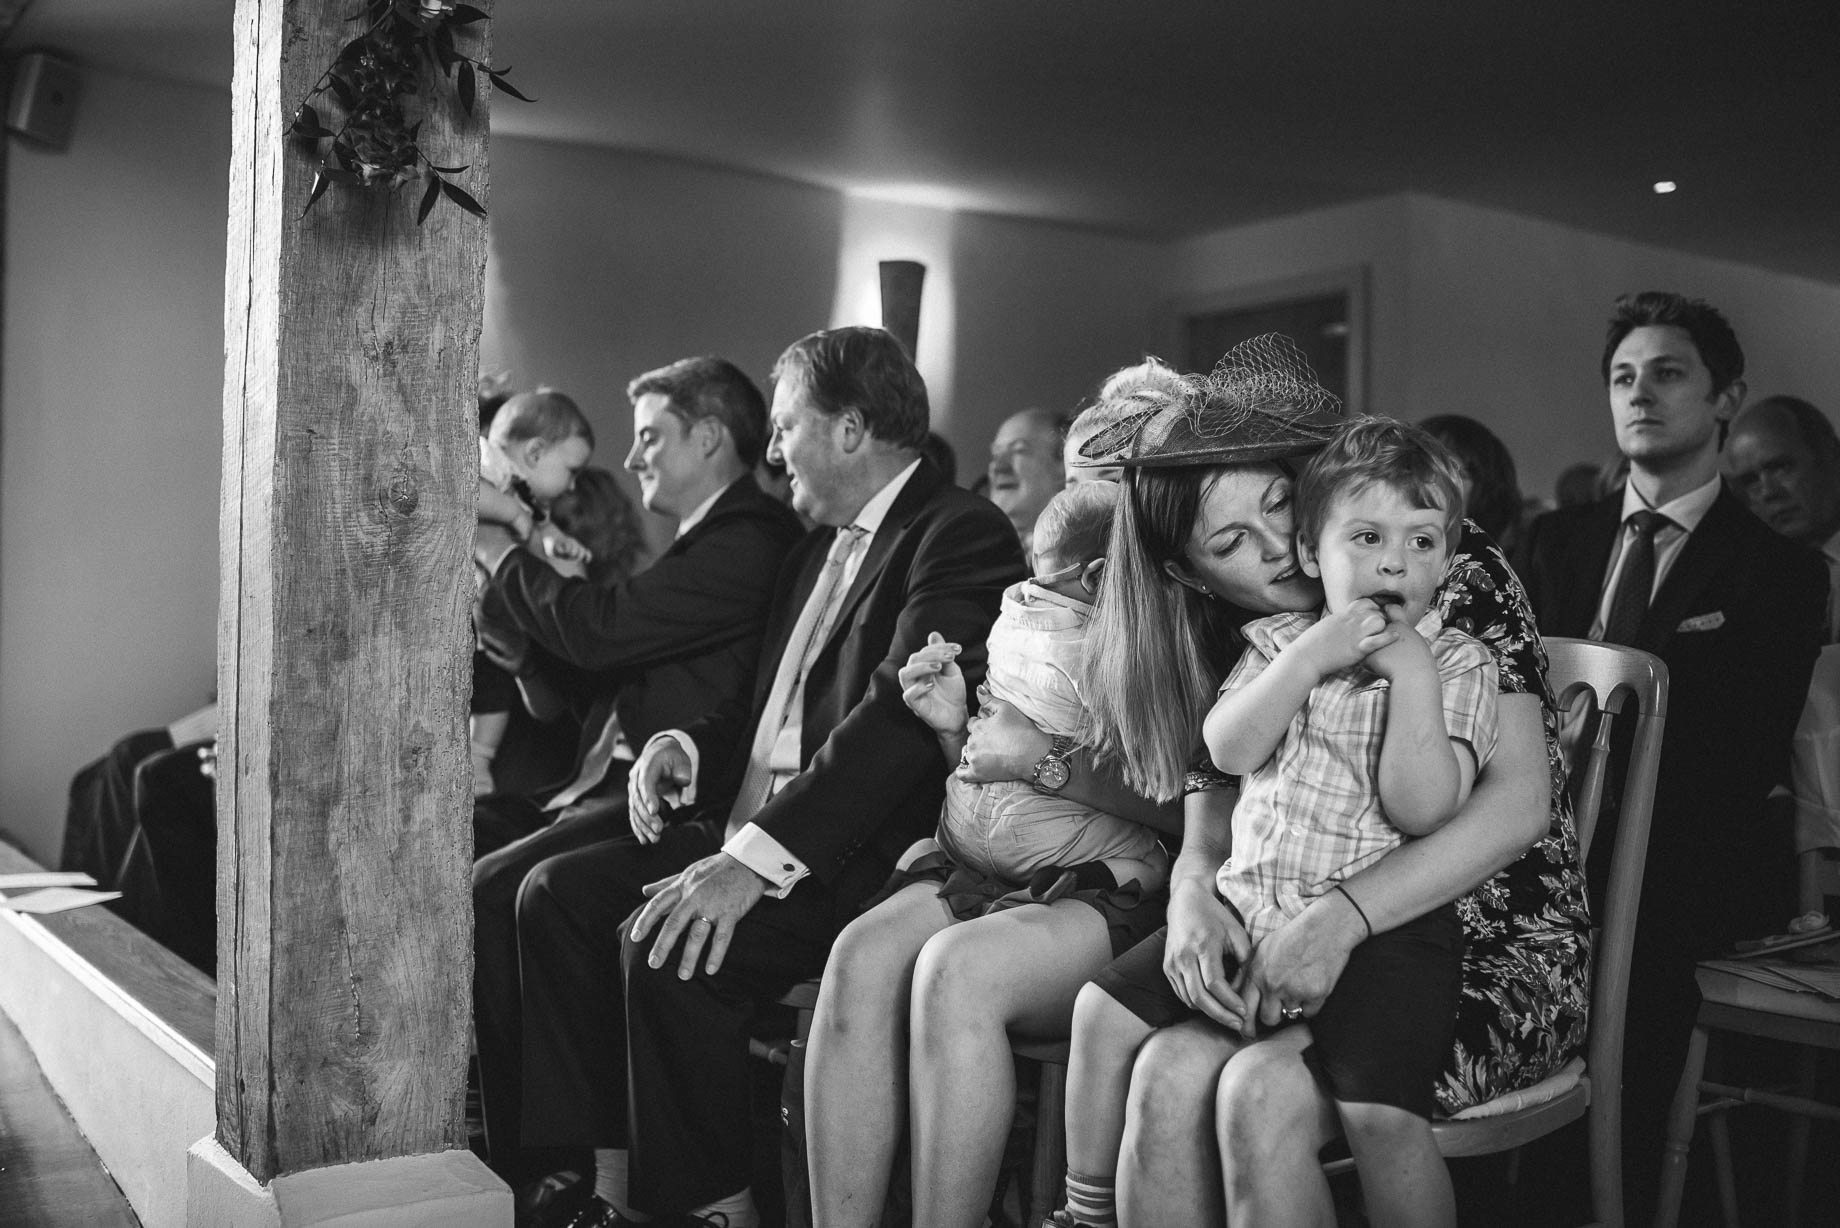 Bury Court Barn wedding photography by Guy Collier - Heather and Pat (56 of 170)